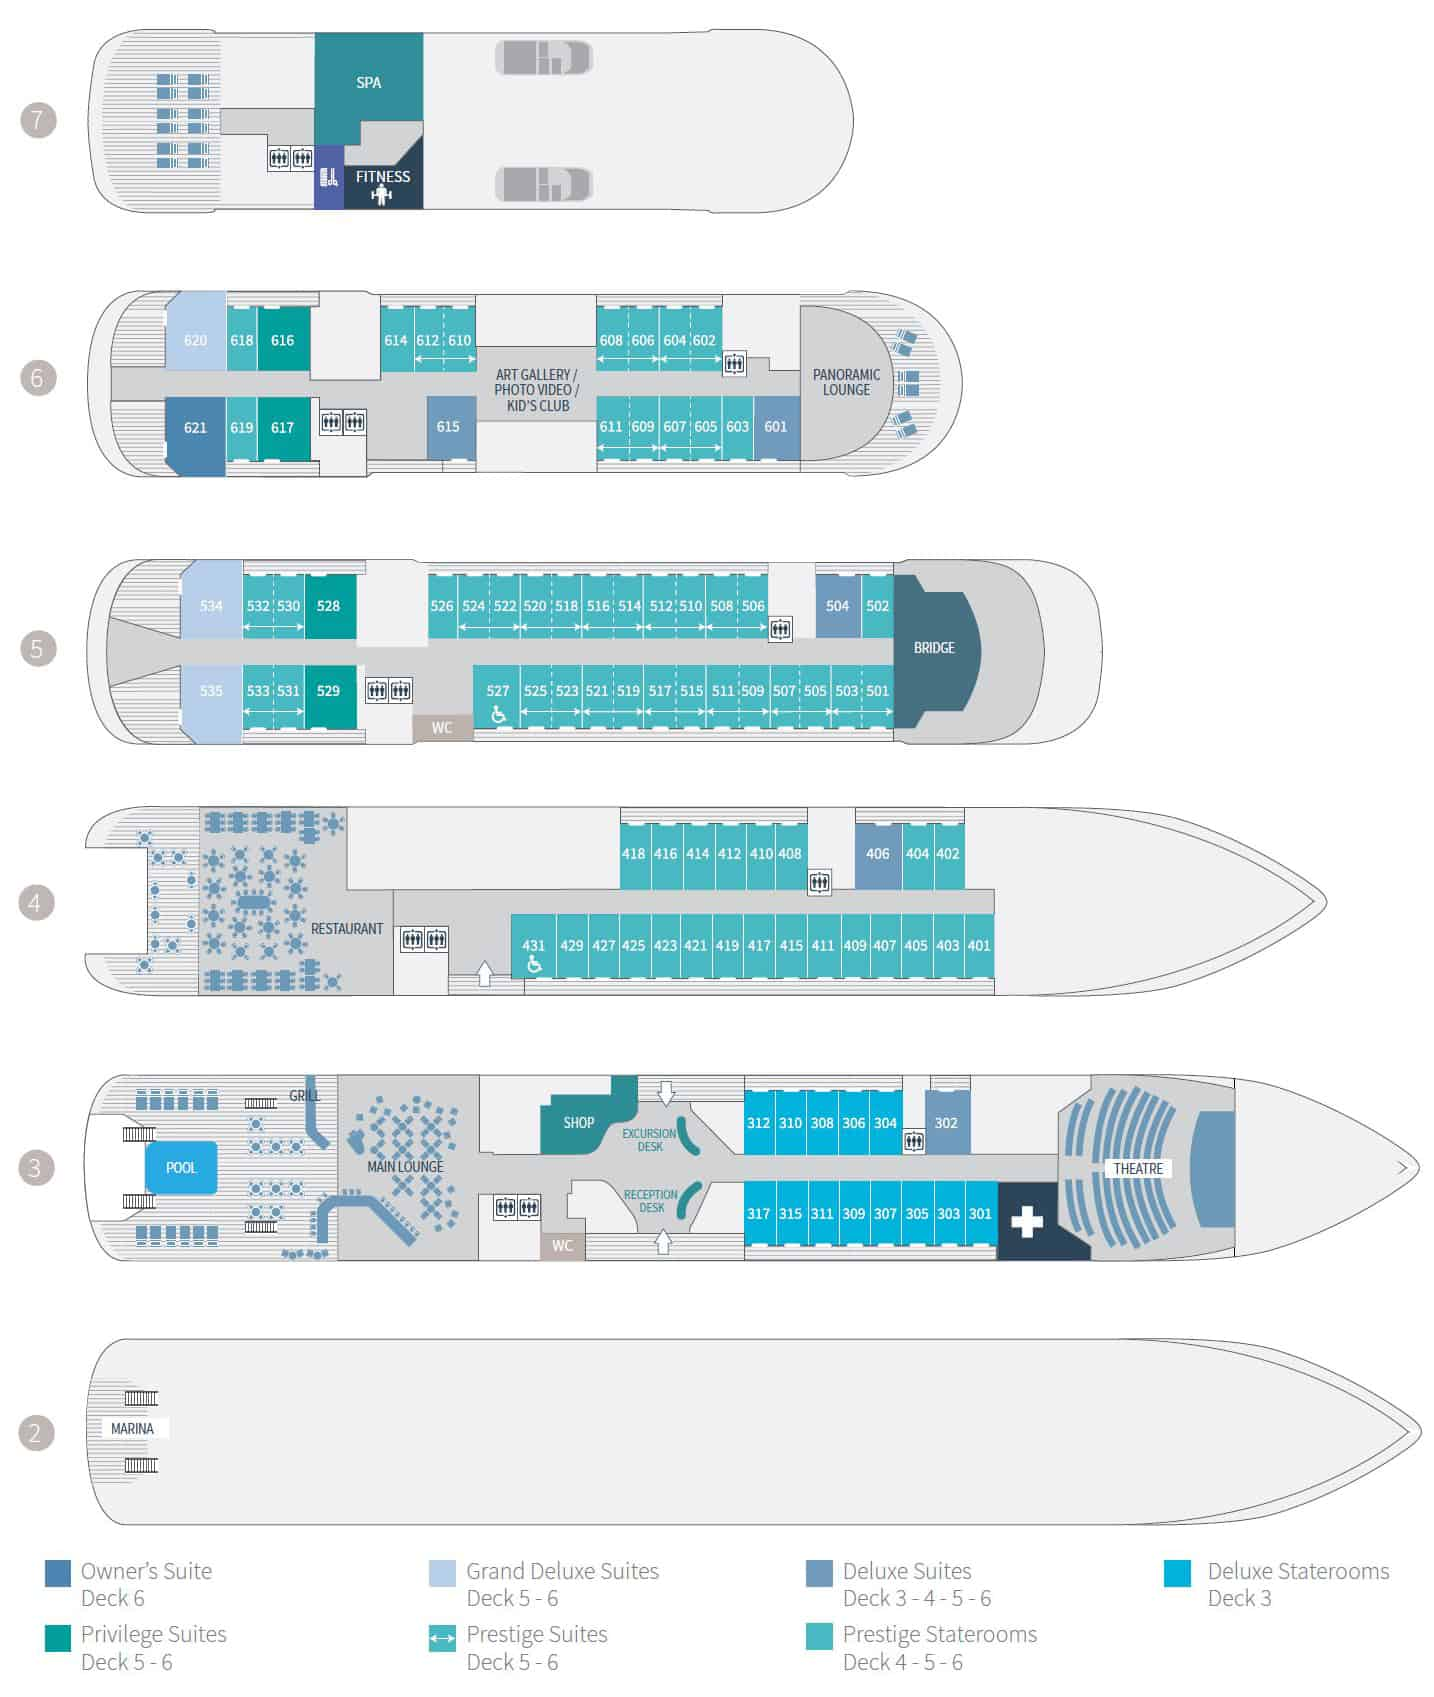 Deck plan of 184-guest Le Jacques Cartier French luxury expedition ship, showing 4 passenger decks with 88 staterooms & 4 suites.